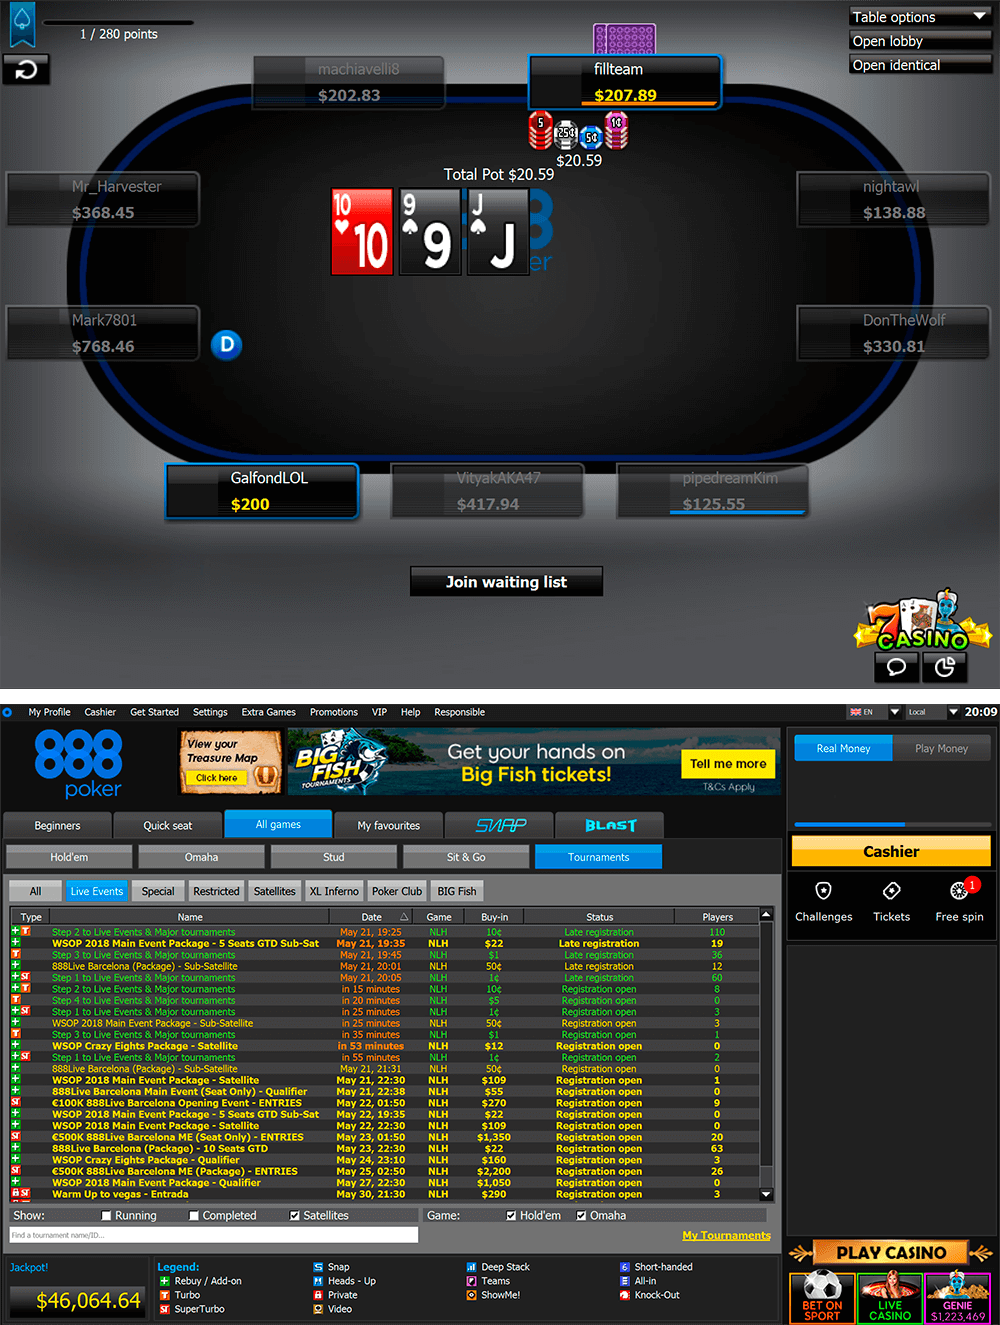 888poker table, 888 poker lobby